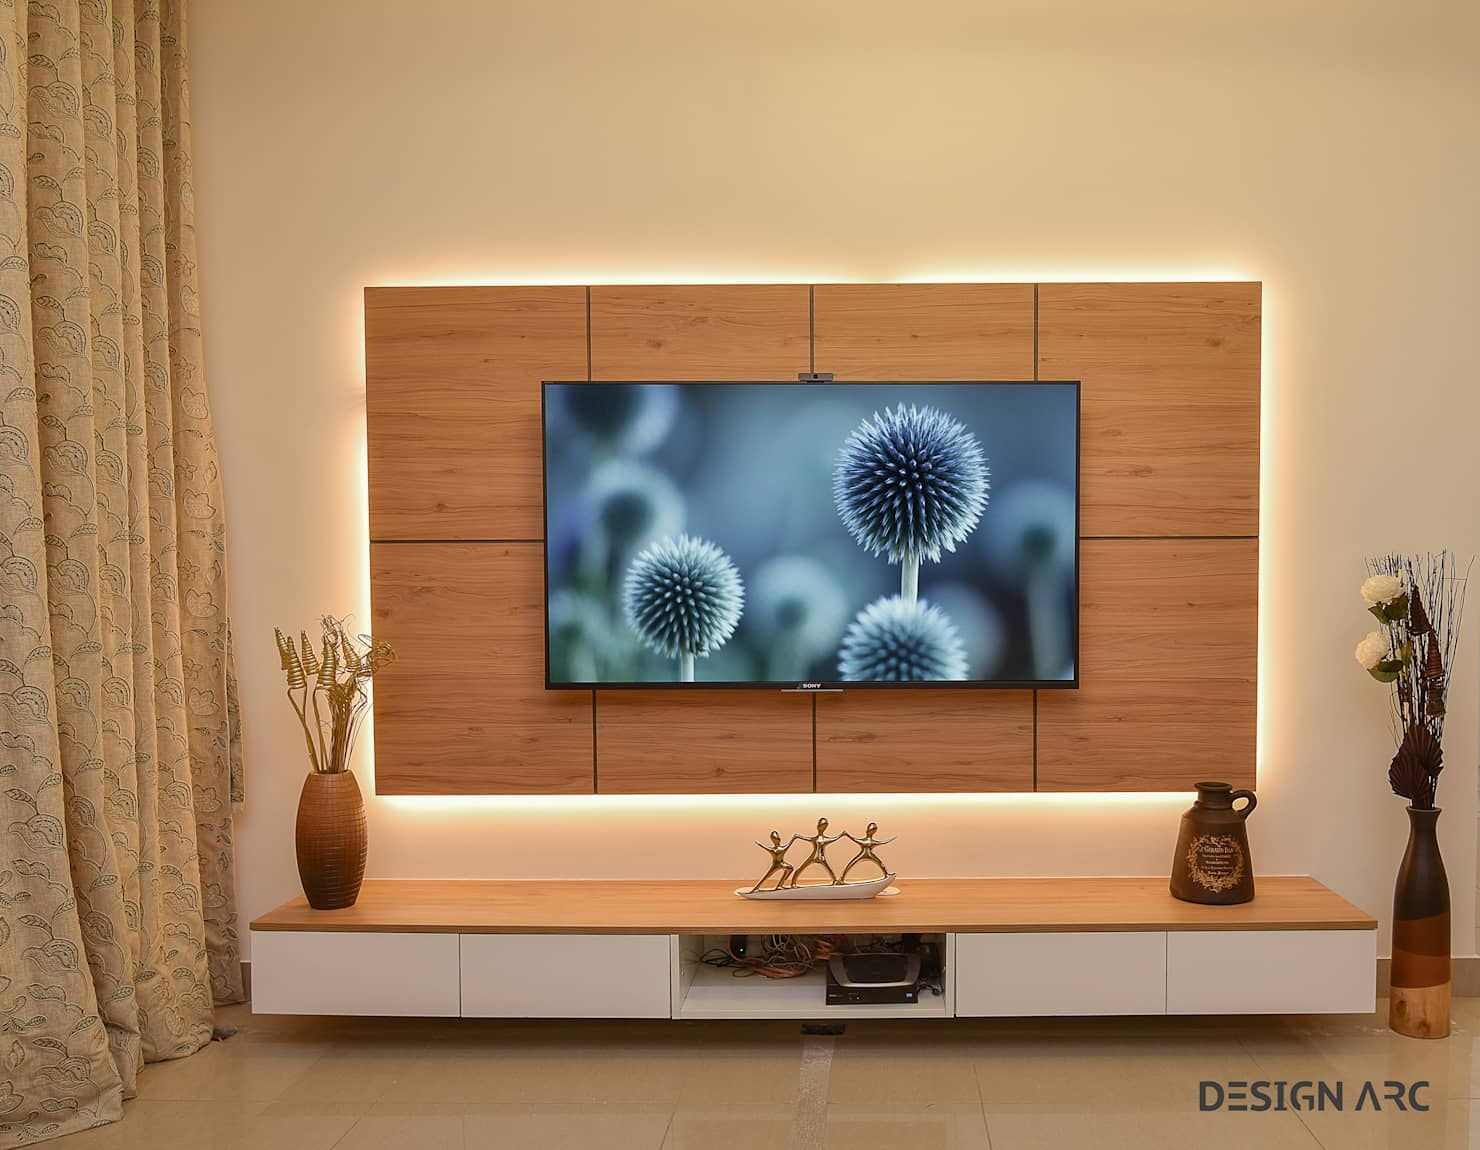 Tv unit design modern living room by design arc interiors ...